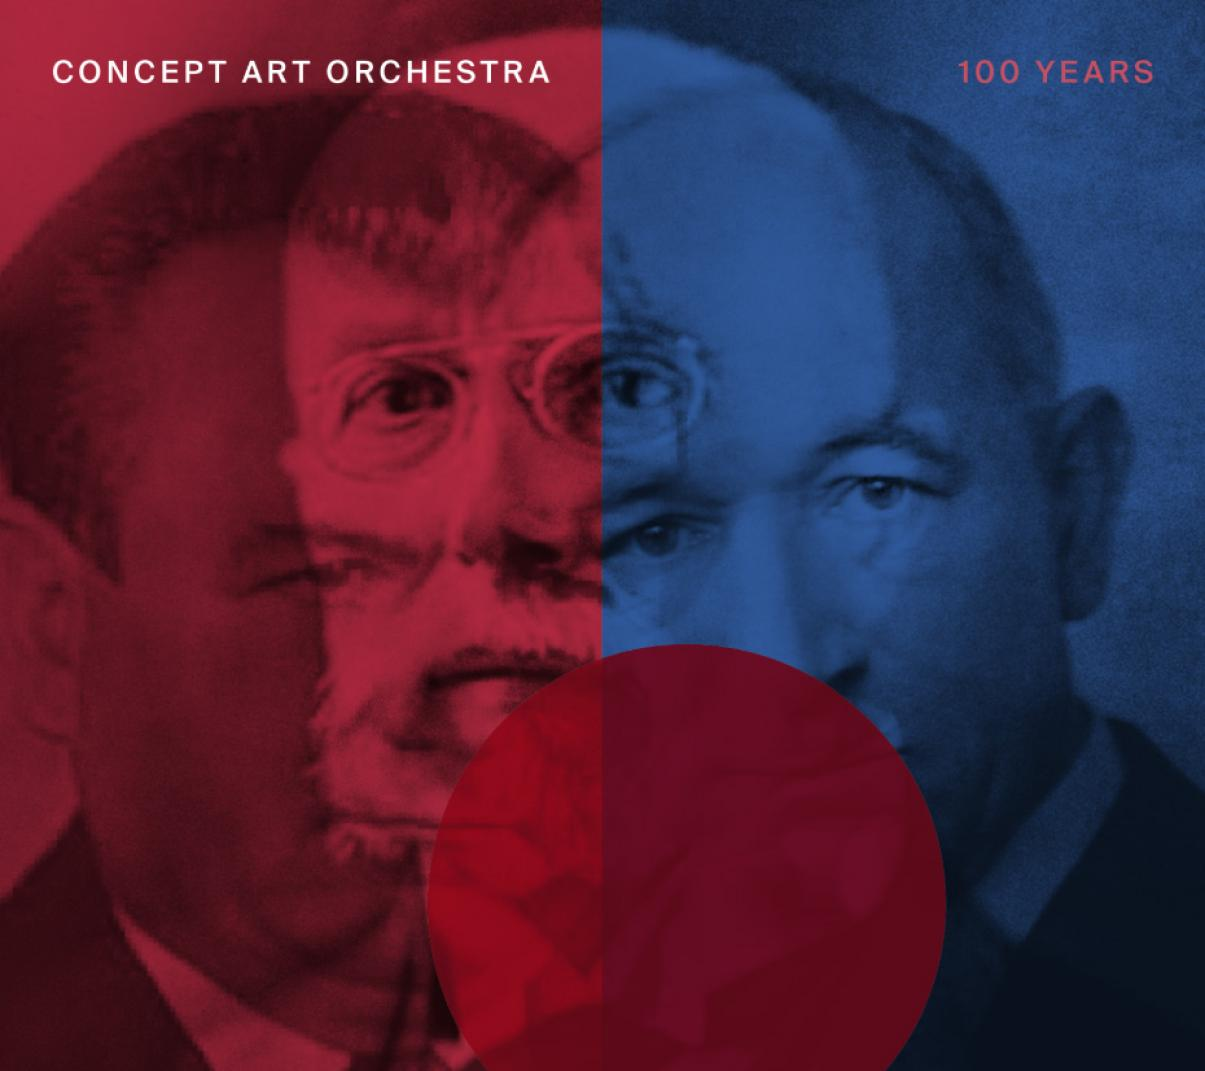 Concept Art Orchestra: 100 Years